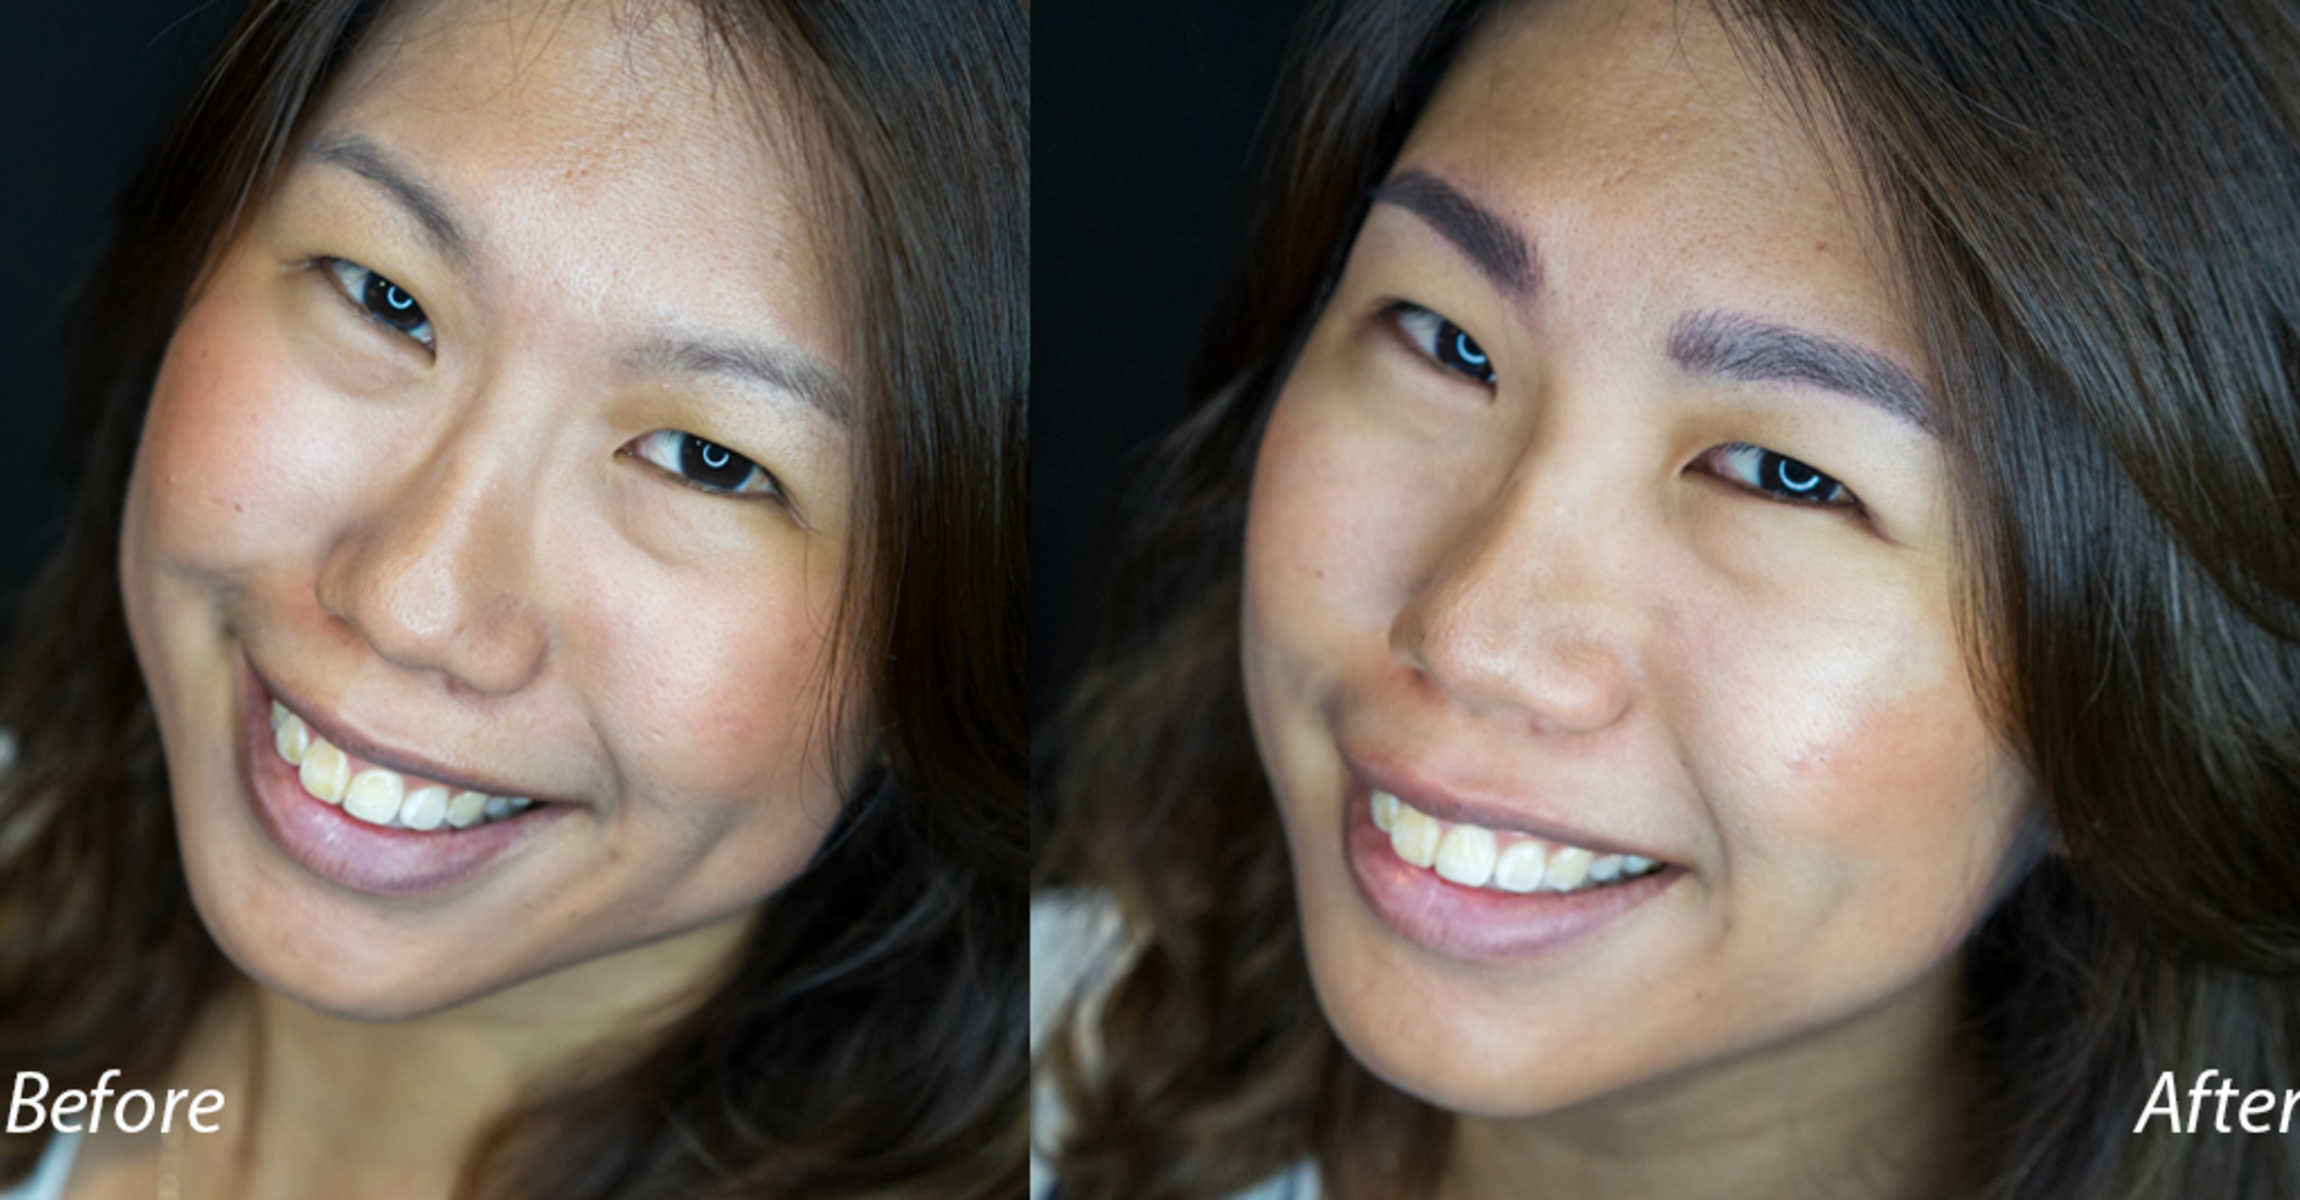 Will Second Time be sufficient? Agent G Tries Korean Semi Permanent Eyebrow Makeup For A Second Time!